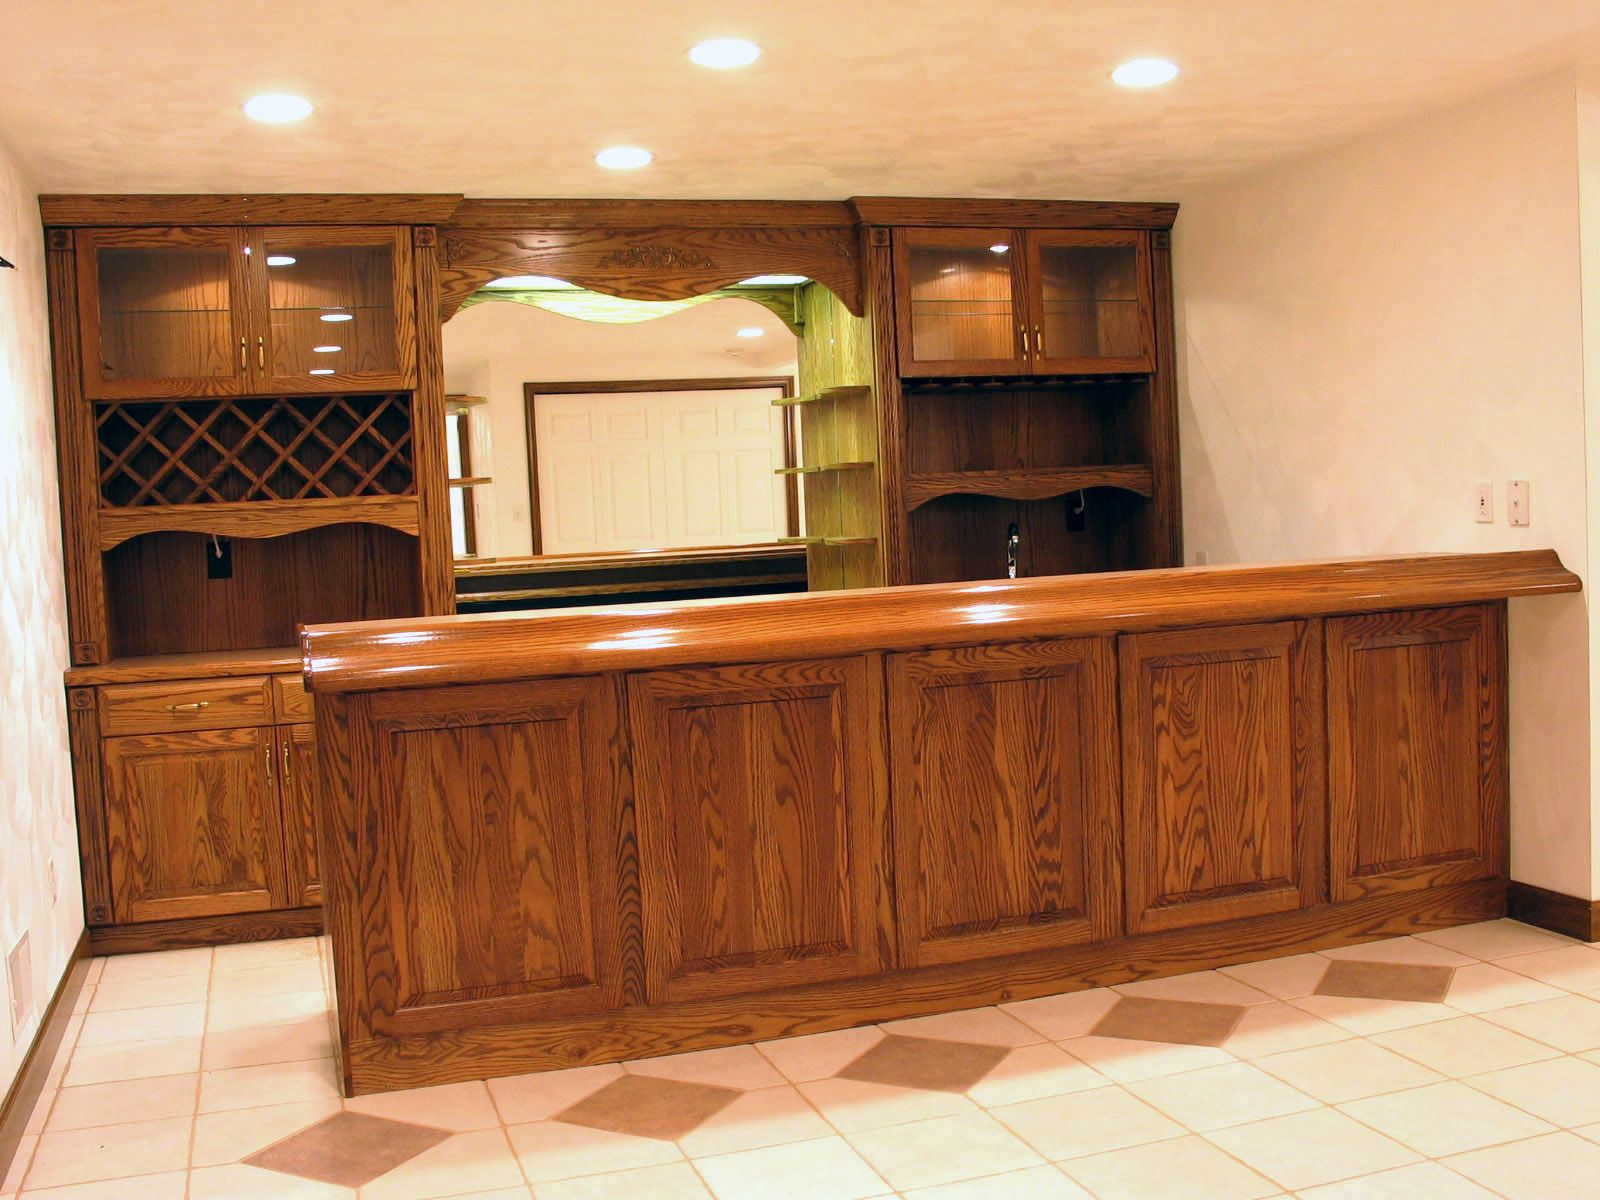 Appealing Bar Front Ideas Gallery - Best idea home design ...